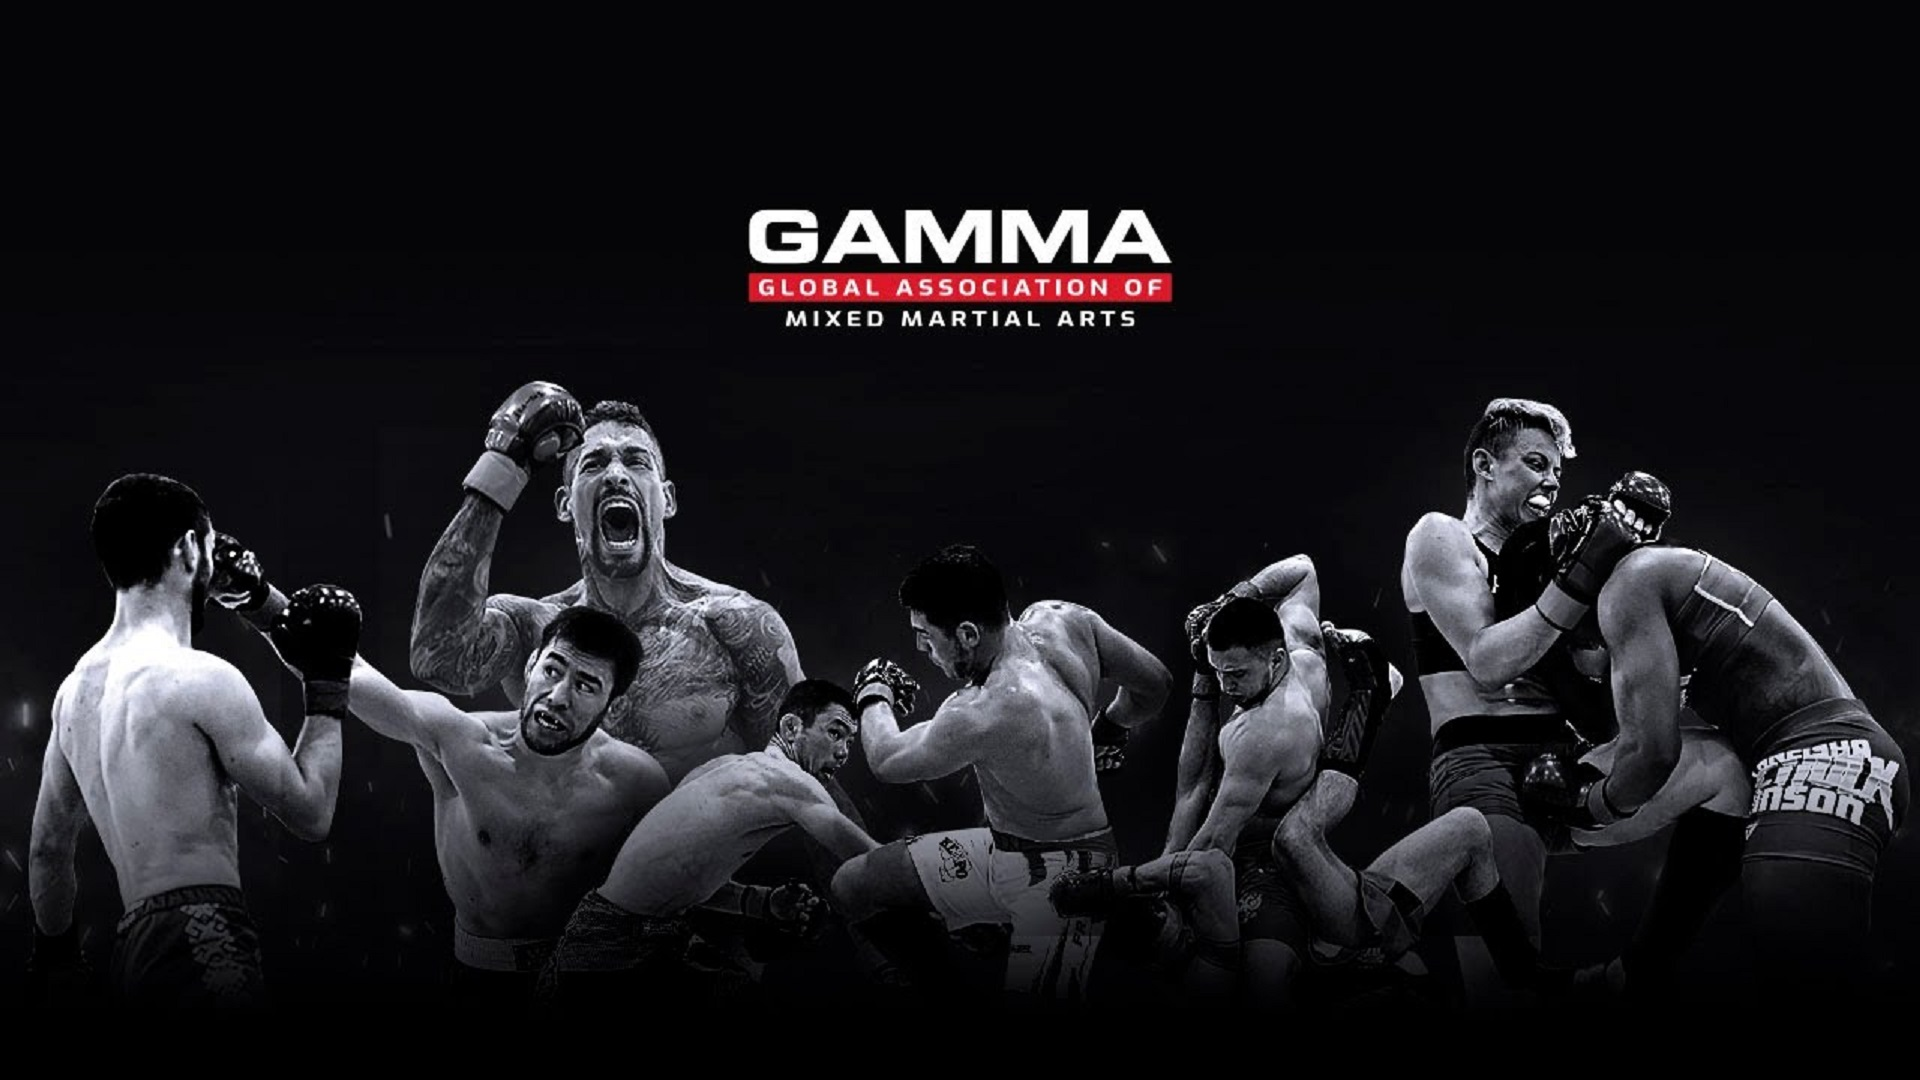 https://lockerroom.in/blog/view/GAMMA-USFMMA-Association